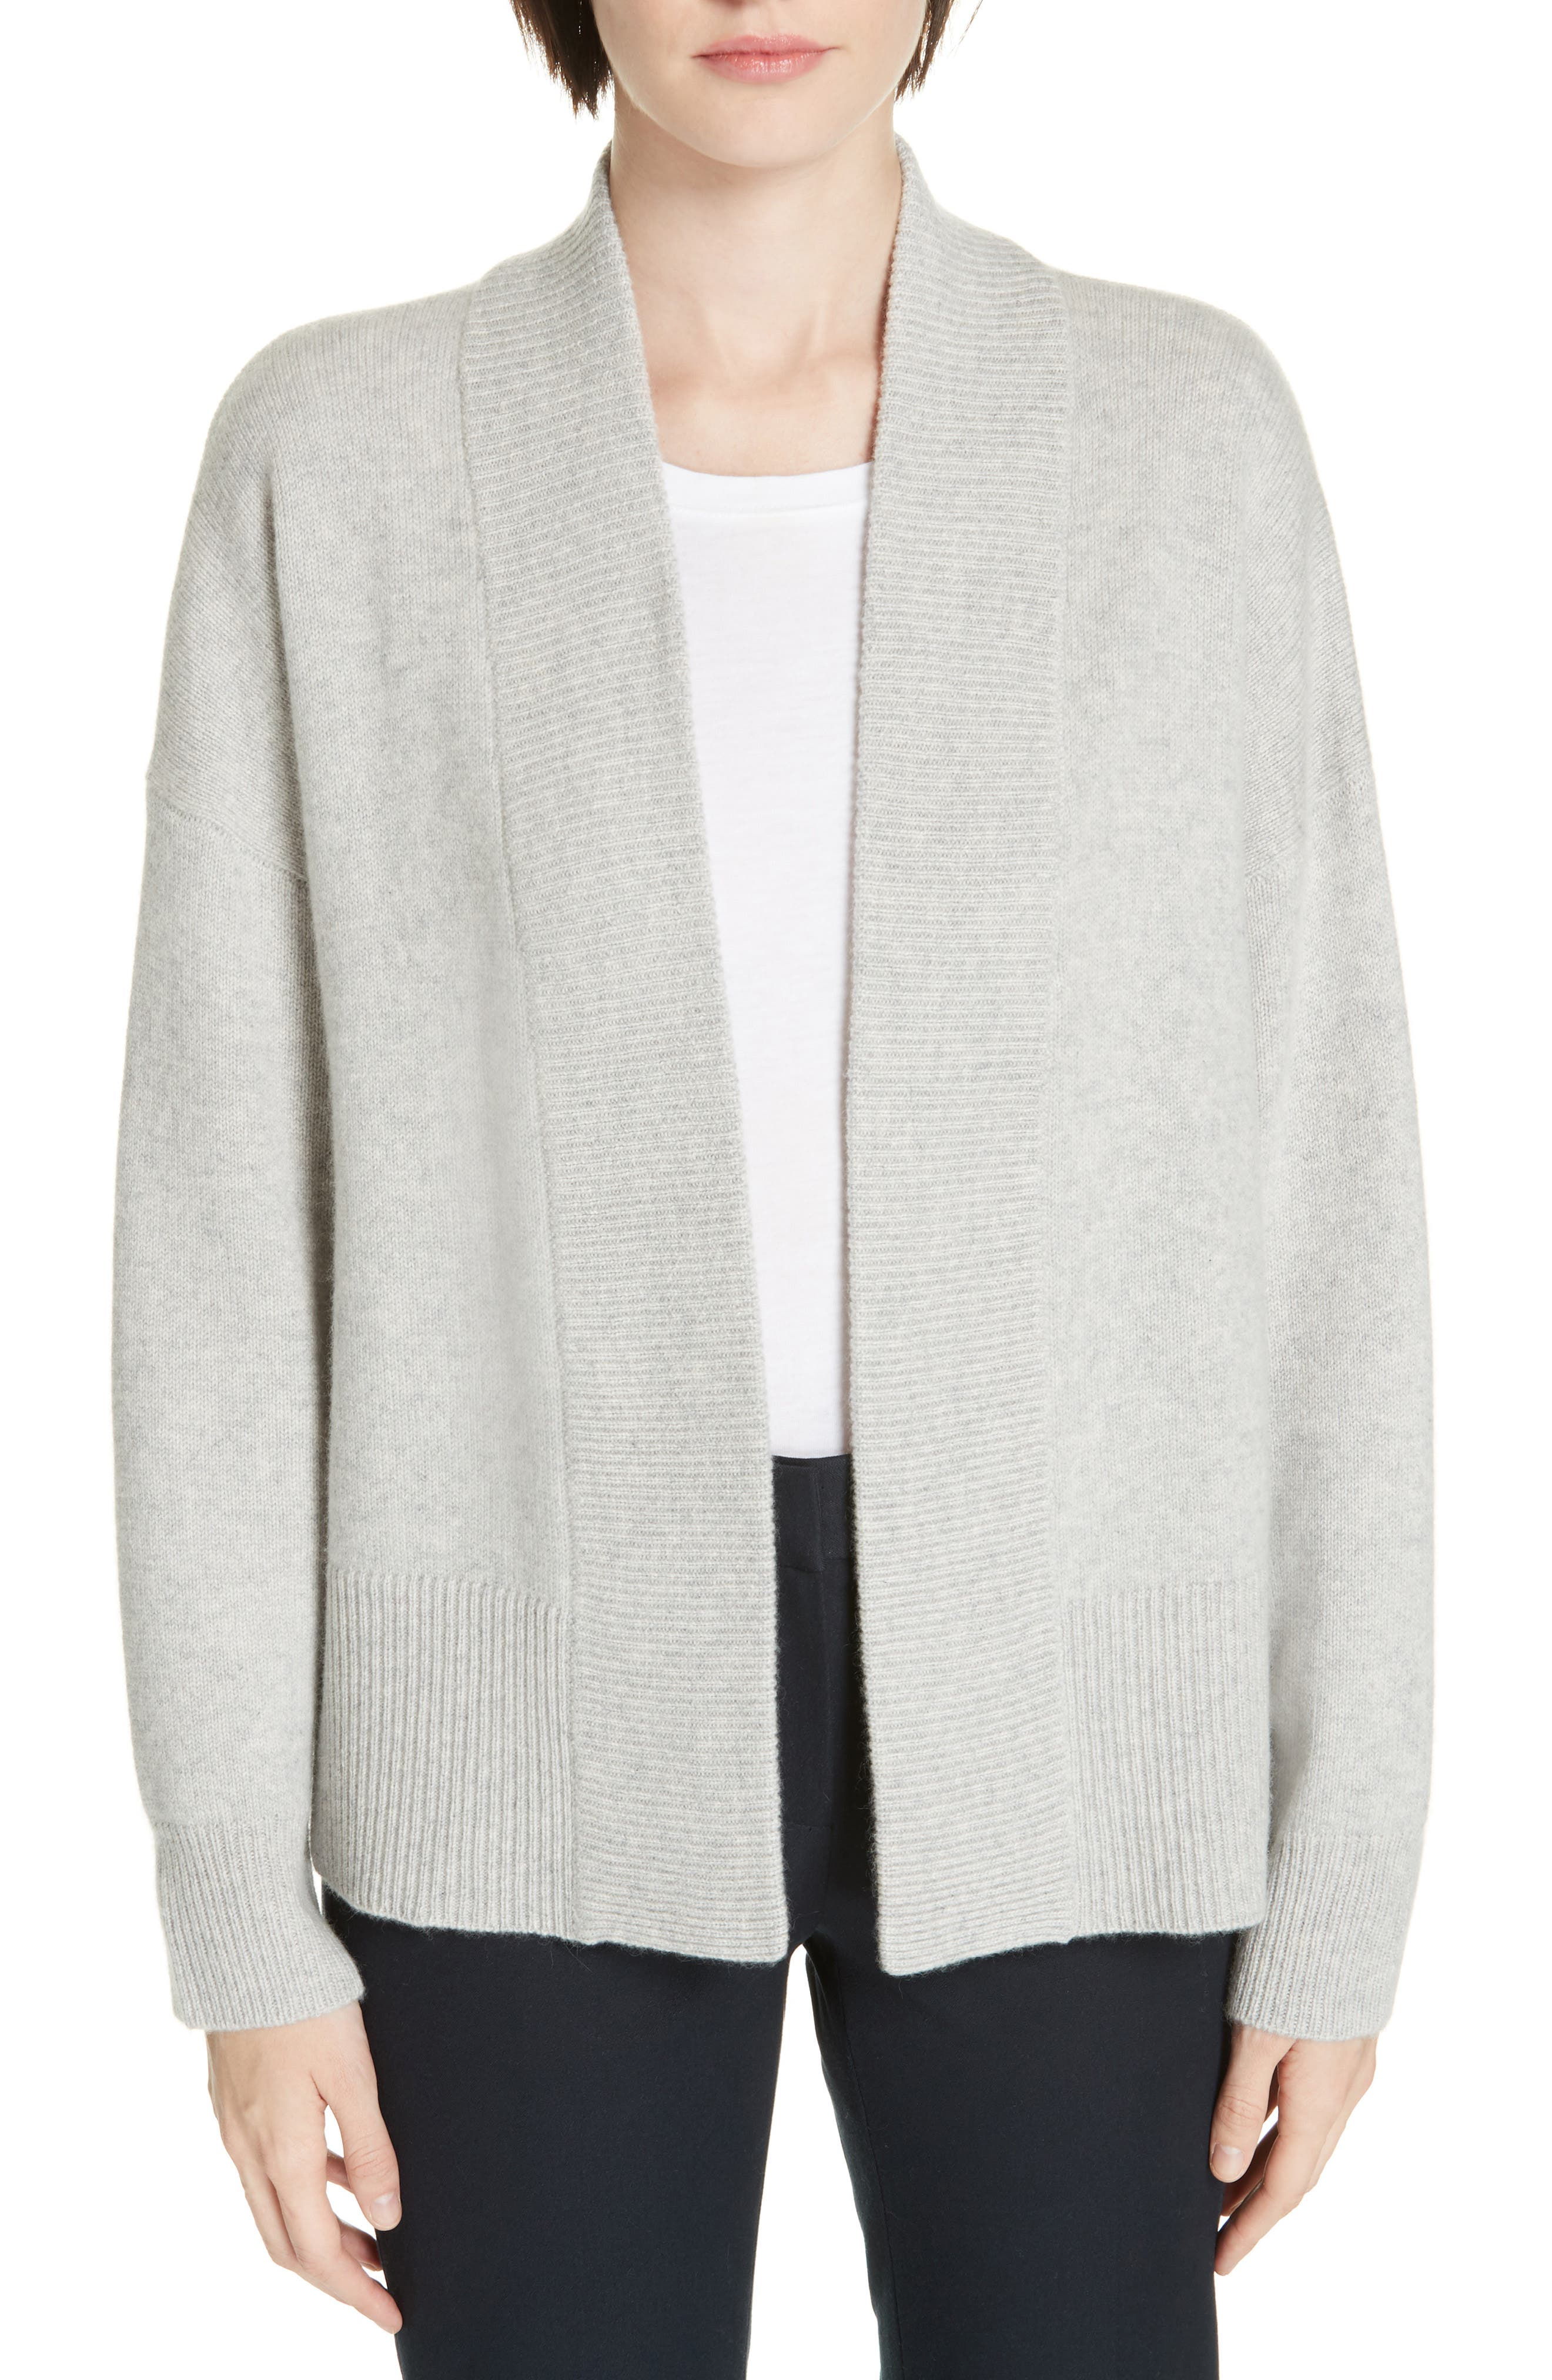 NORDSTROM SIGNATURE Cashmere Blend Cardigan, Main, color, GREY CLAY HEATHER